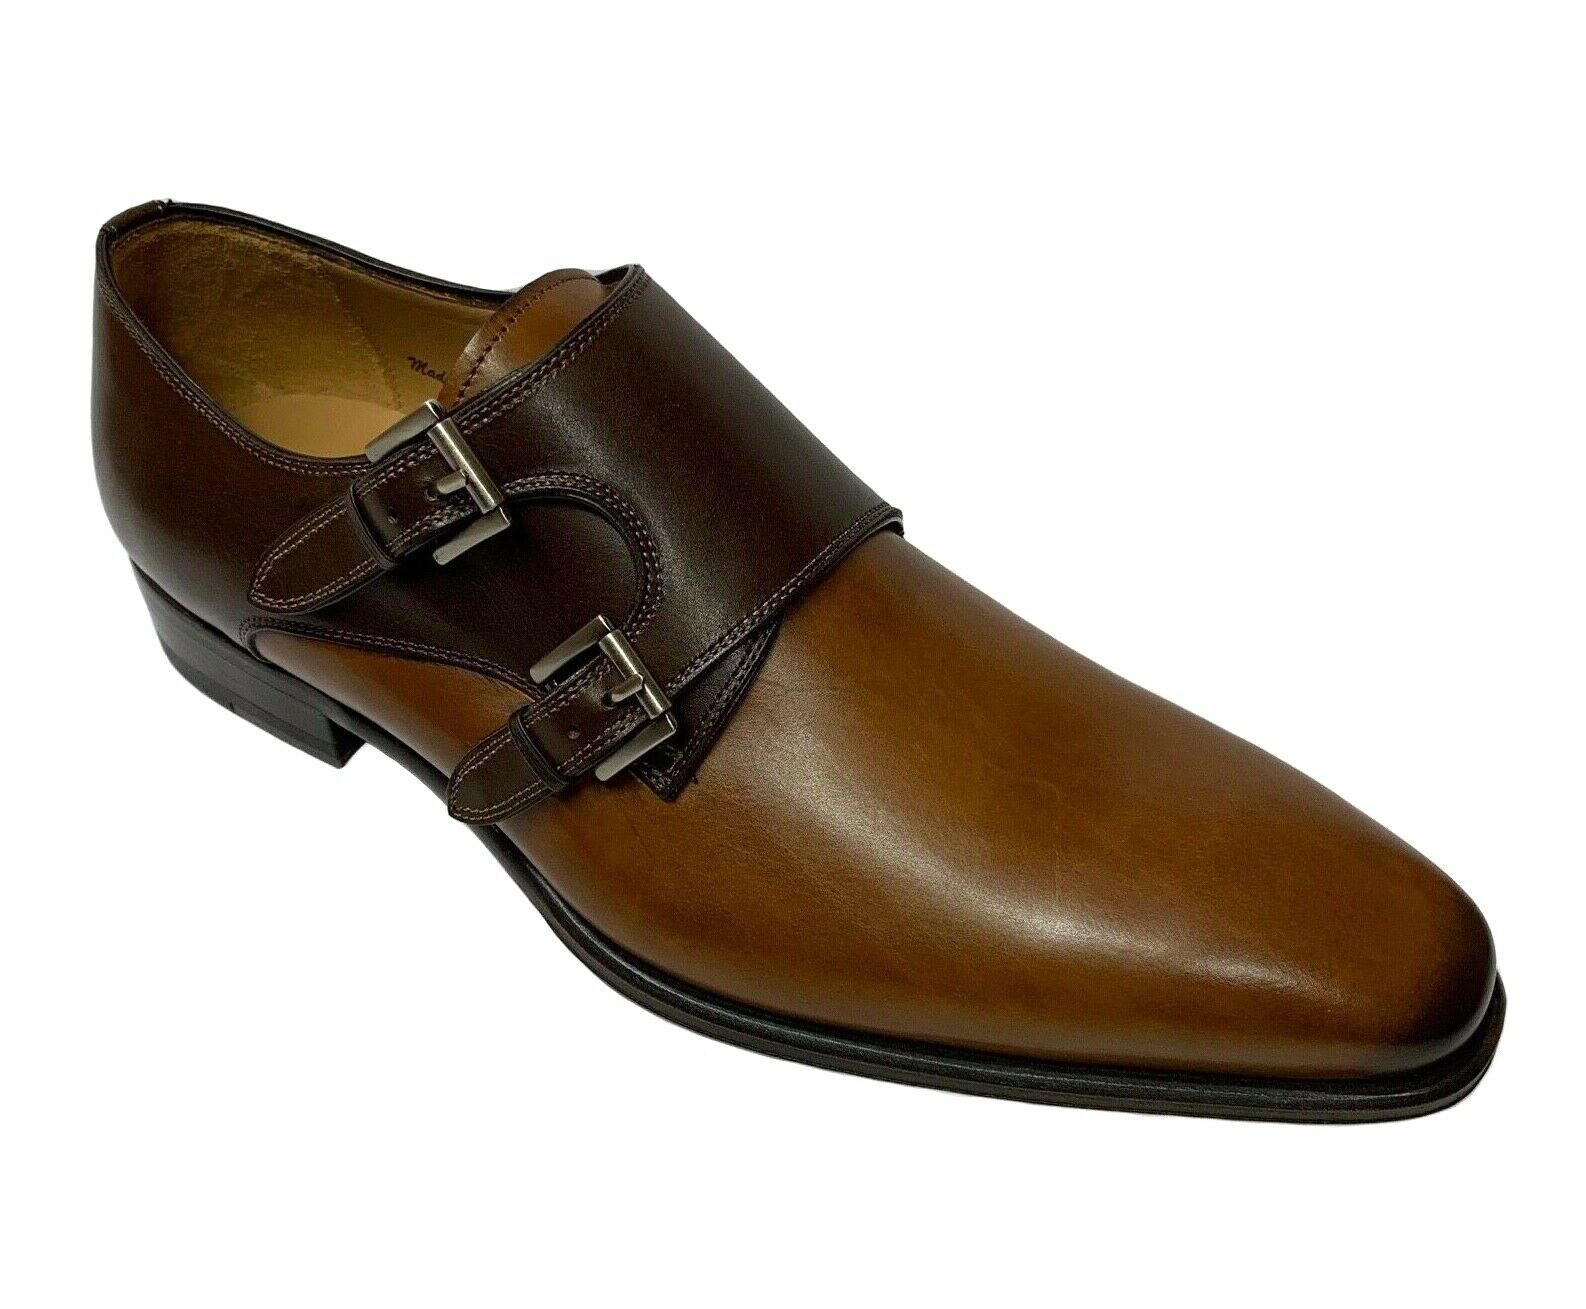 Mezlan Men's Double Monk Strap Tan Marronee Leather Dress scarpe 9159